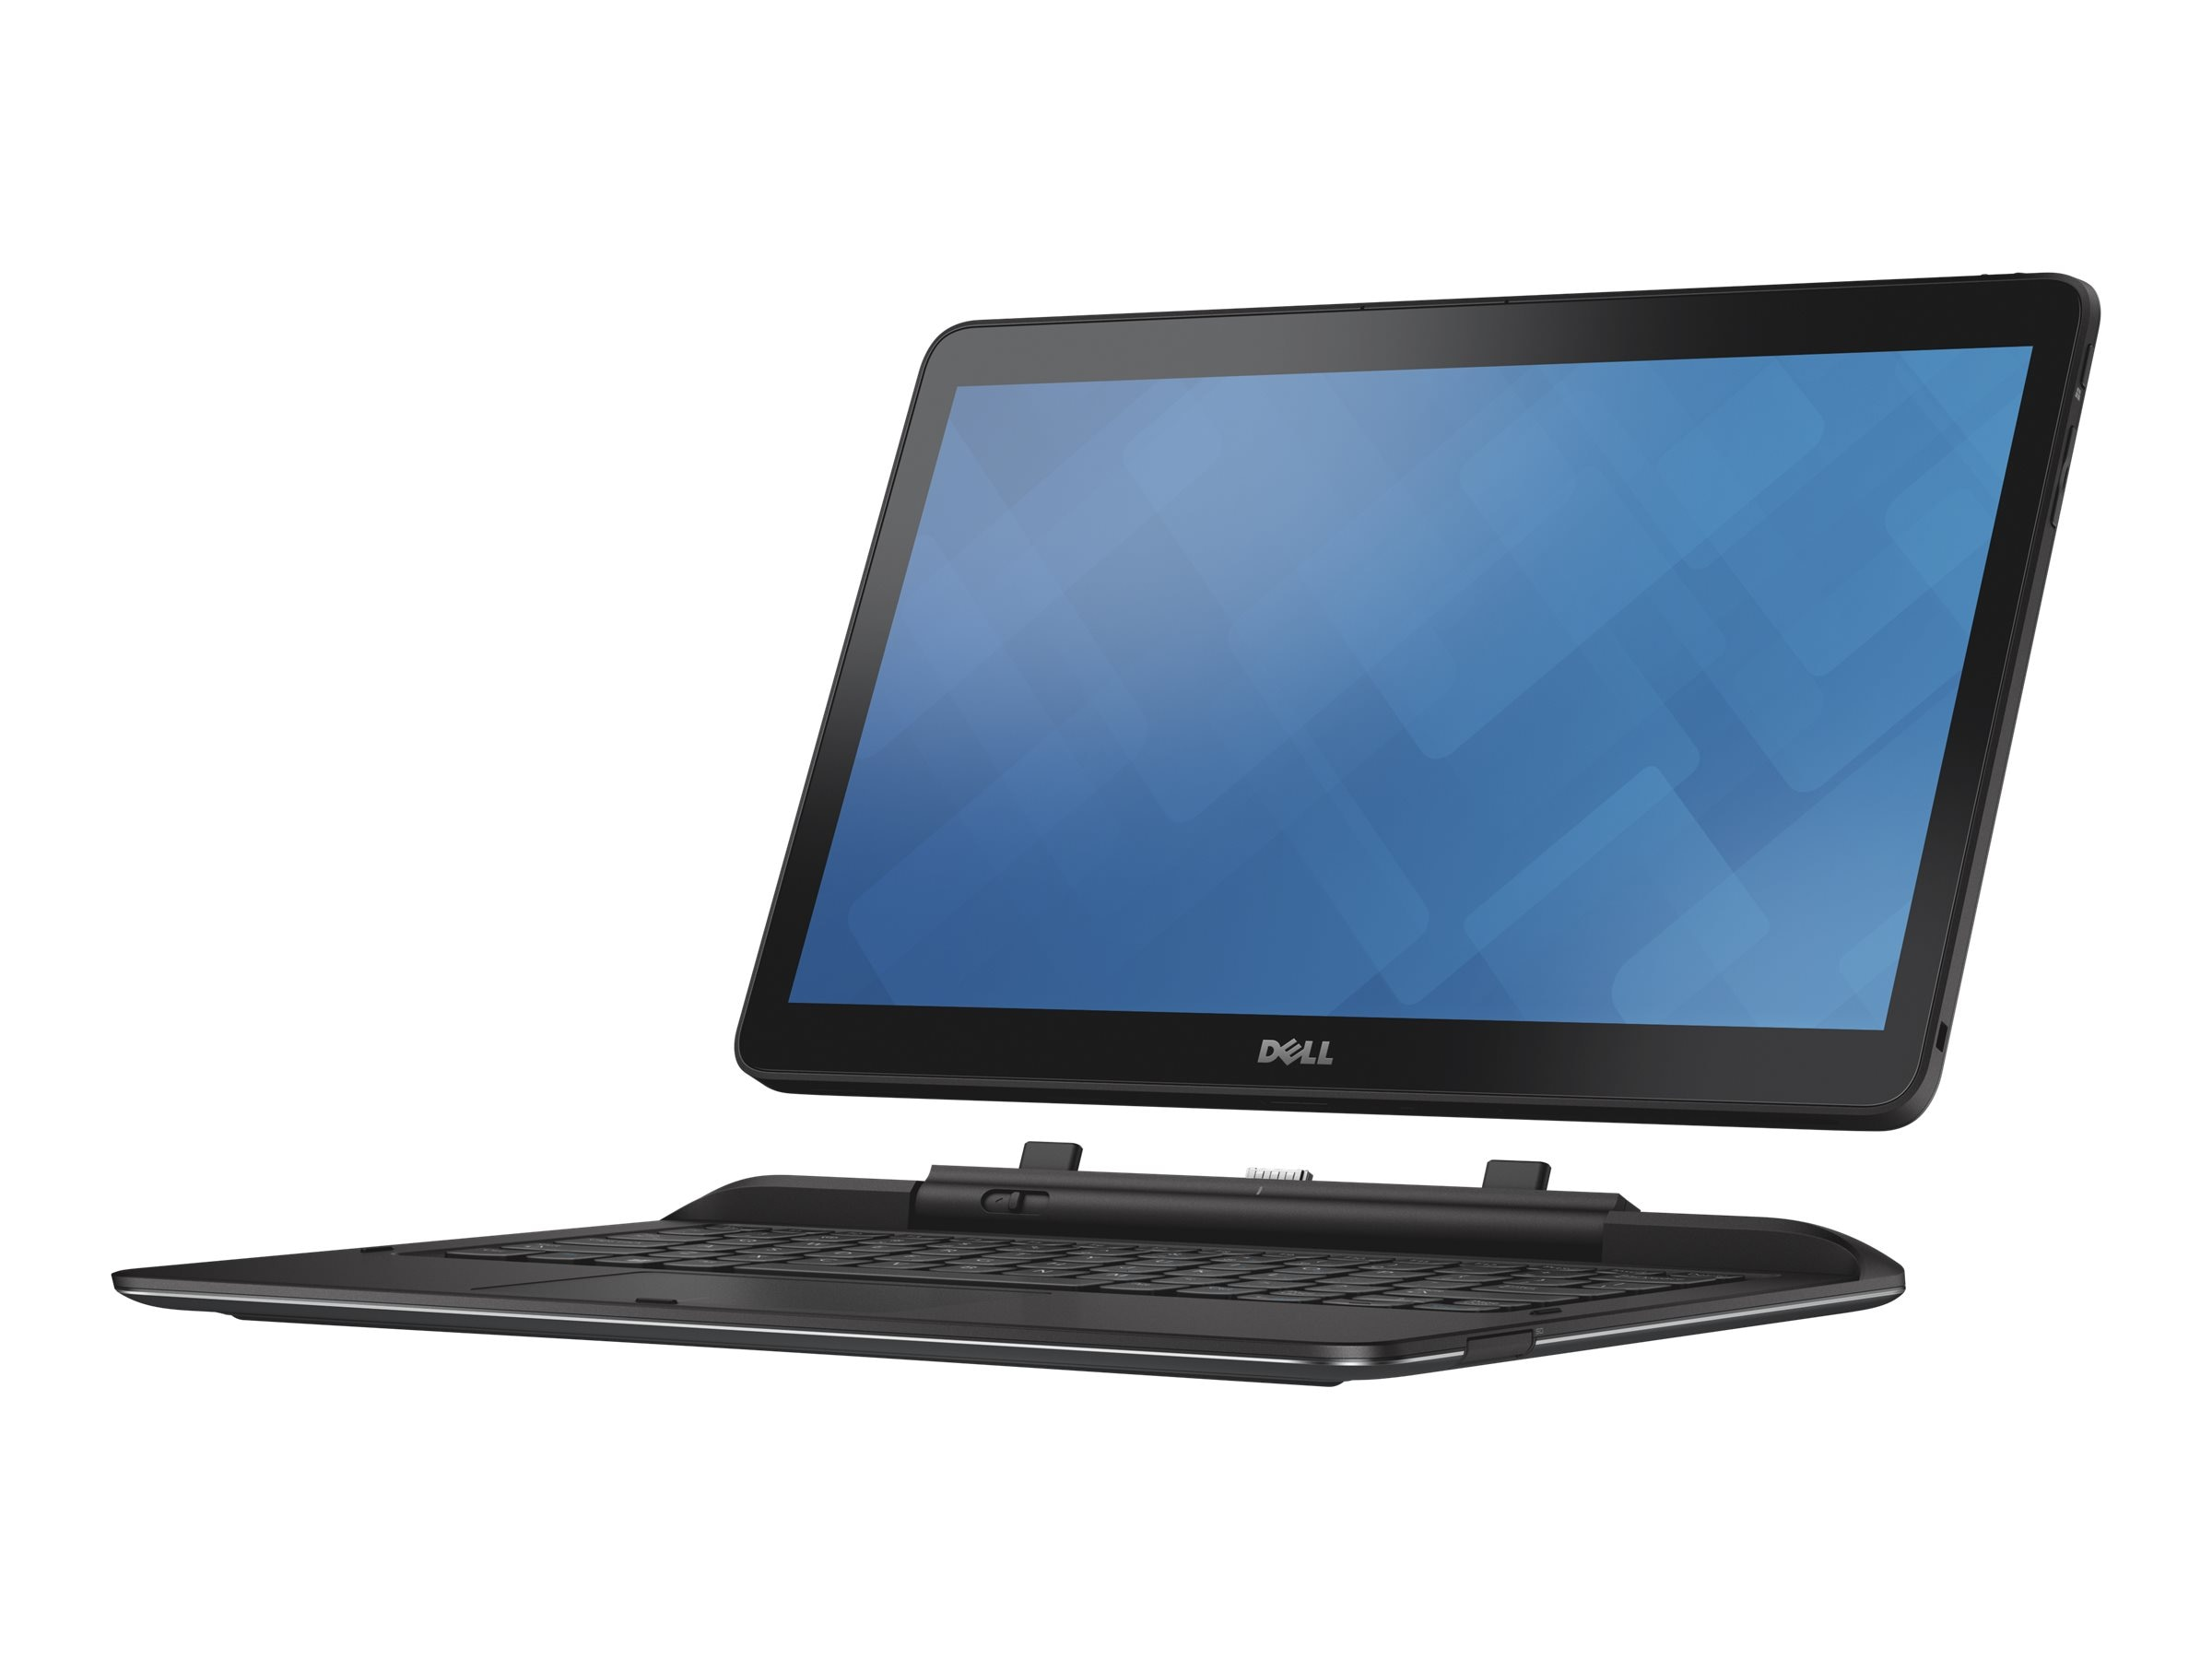 Open Box Dell Latitude 7350 Core M-5Y70 1.1GHz 8GB 256GB SSD ac BT 3C 13.3 FHD MT W8.1P64, 462-9518, 30877313, Notebooks - Convertible